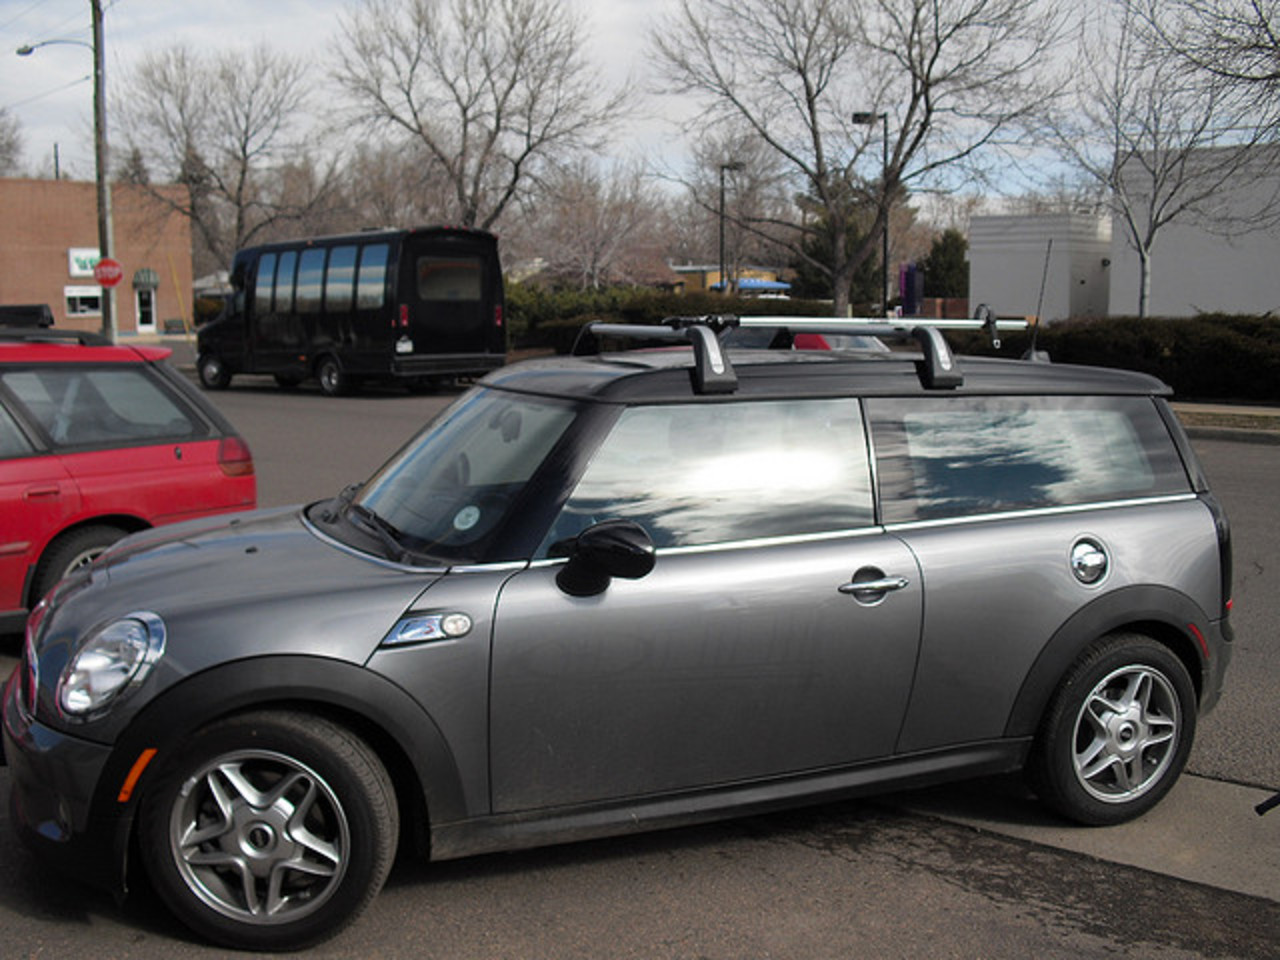 Mini Cooper S Clubman with RockyMounts Bike Rac | Flickr - Photo ...